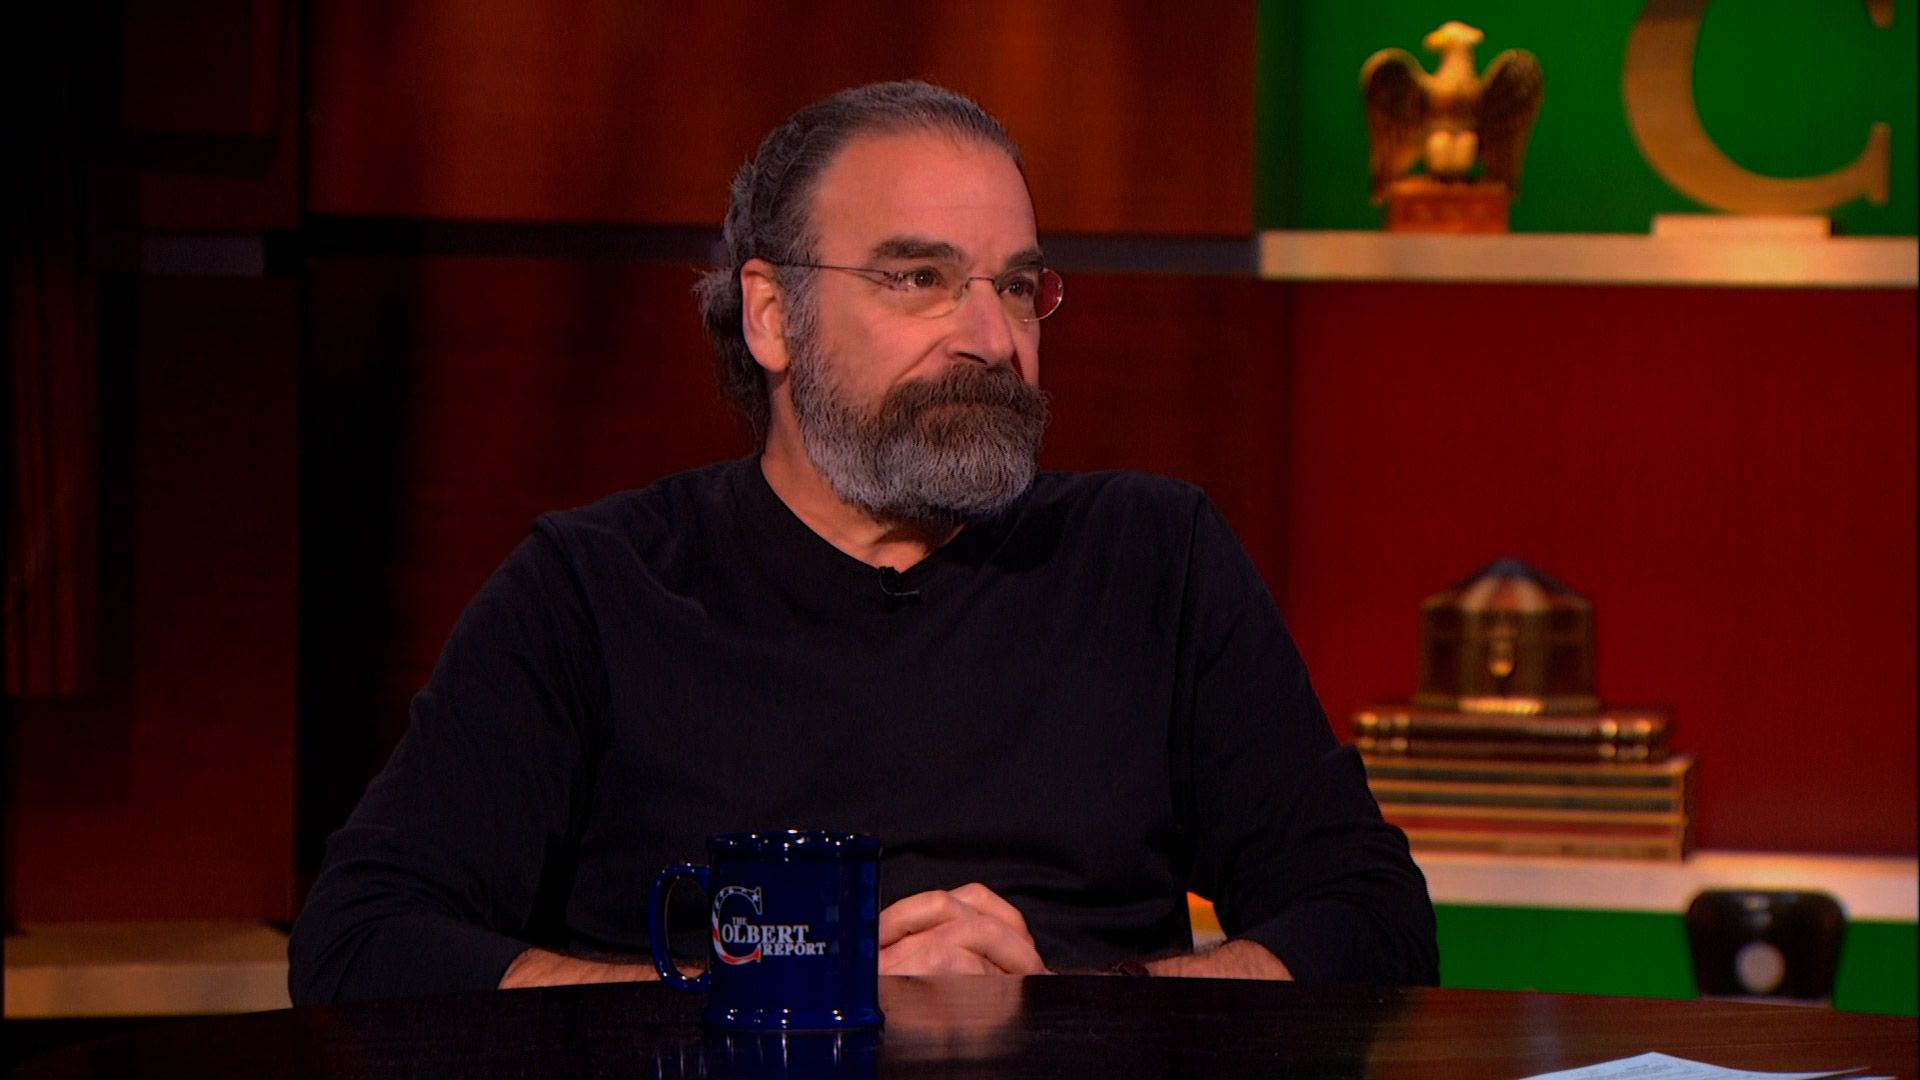 Mandy Patinkin - The Colbert Report (Video Clip) | Comedy ...